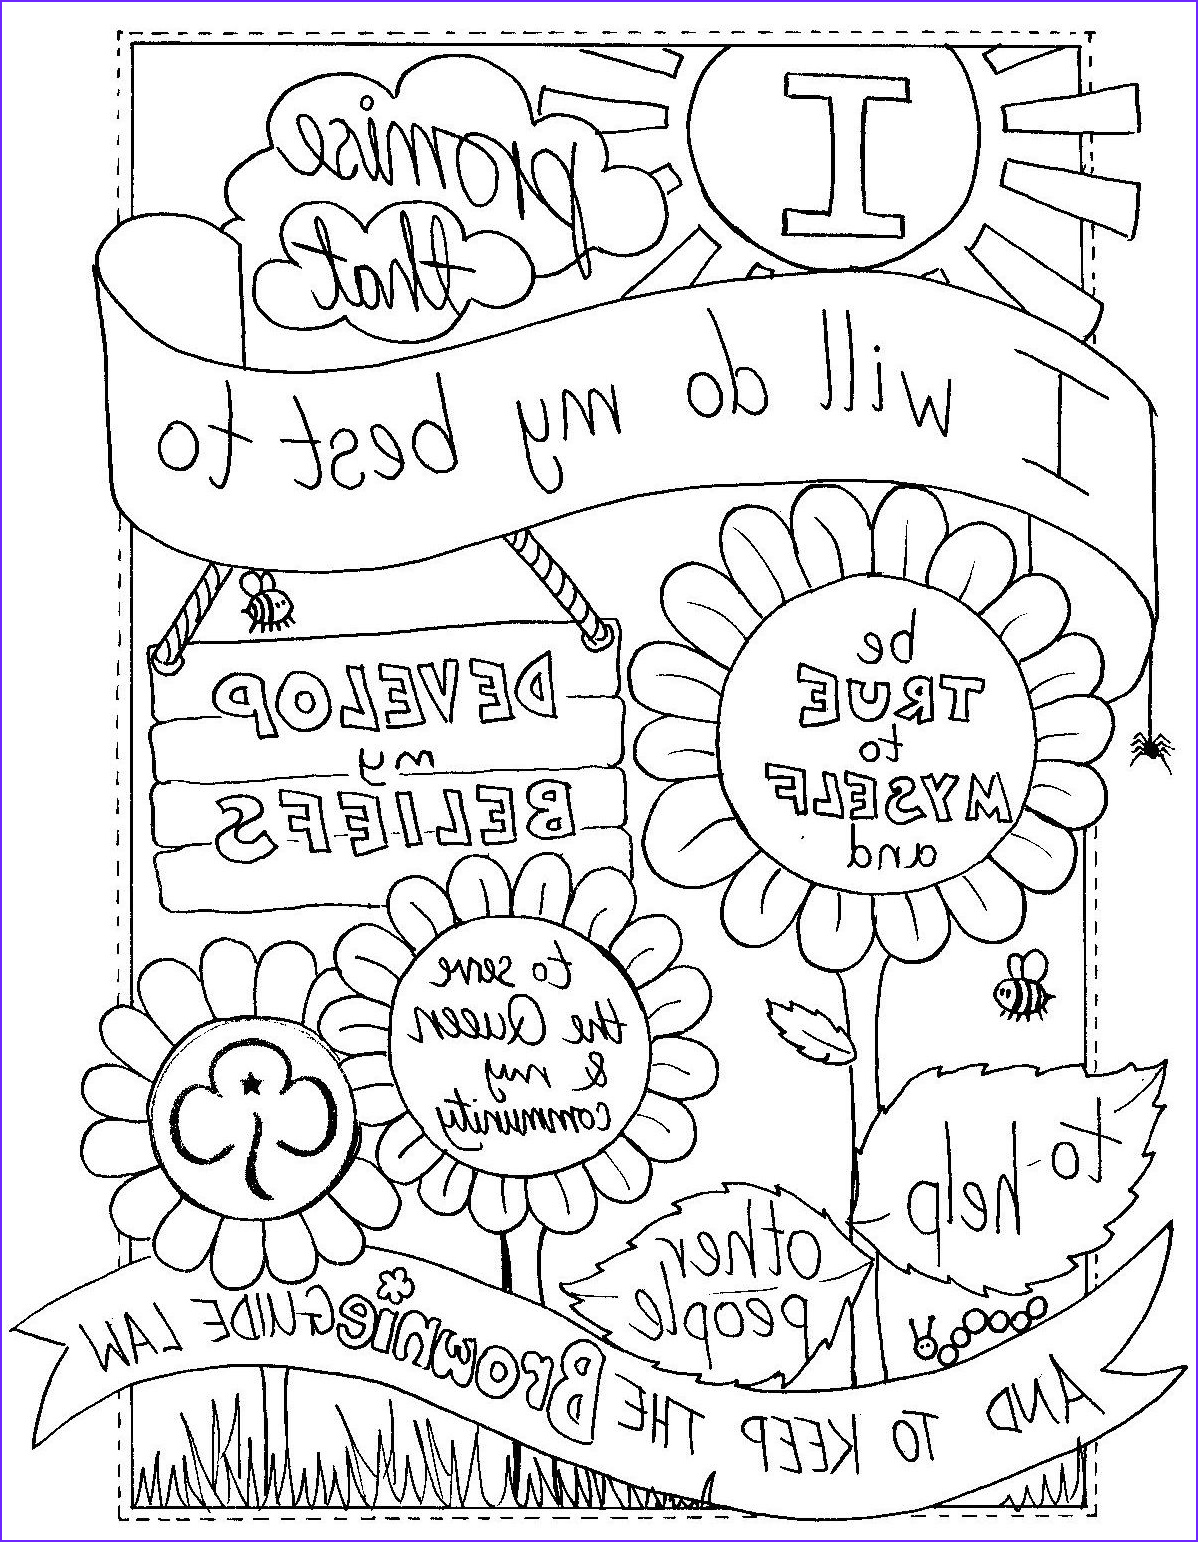 Brownie Girl Scout Coloring Pages Luxury Photos Might Be Retro